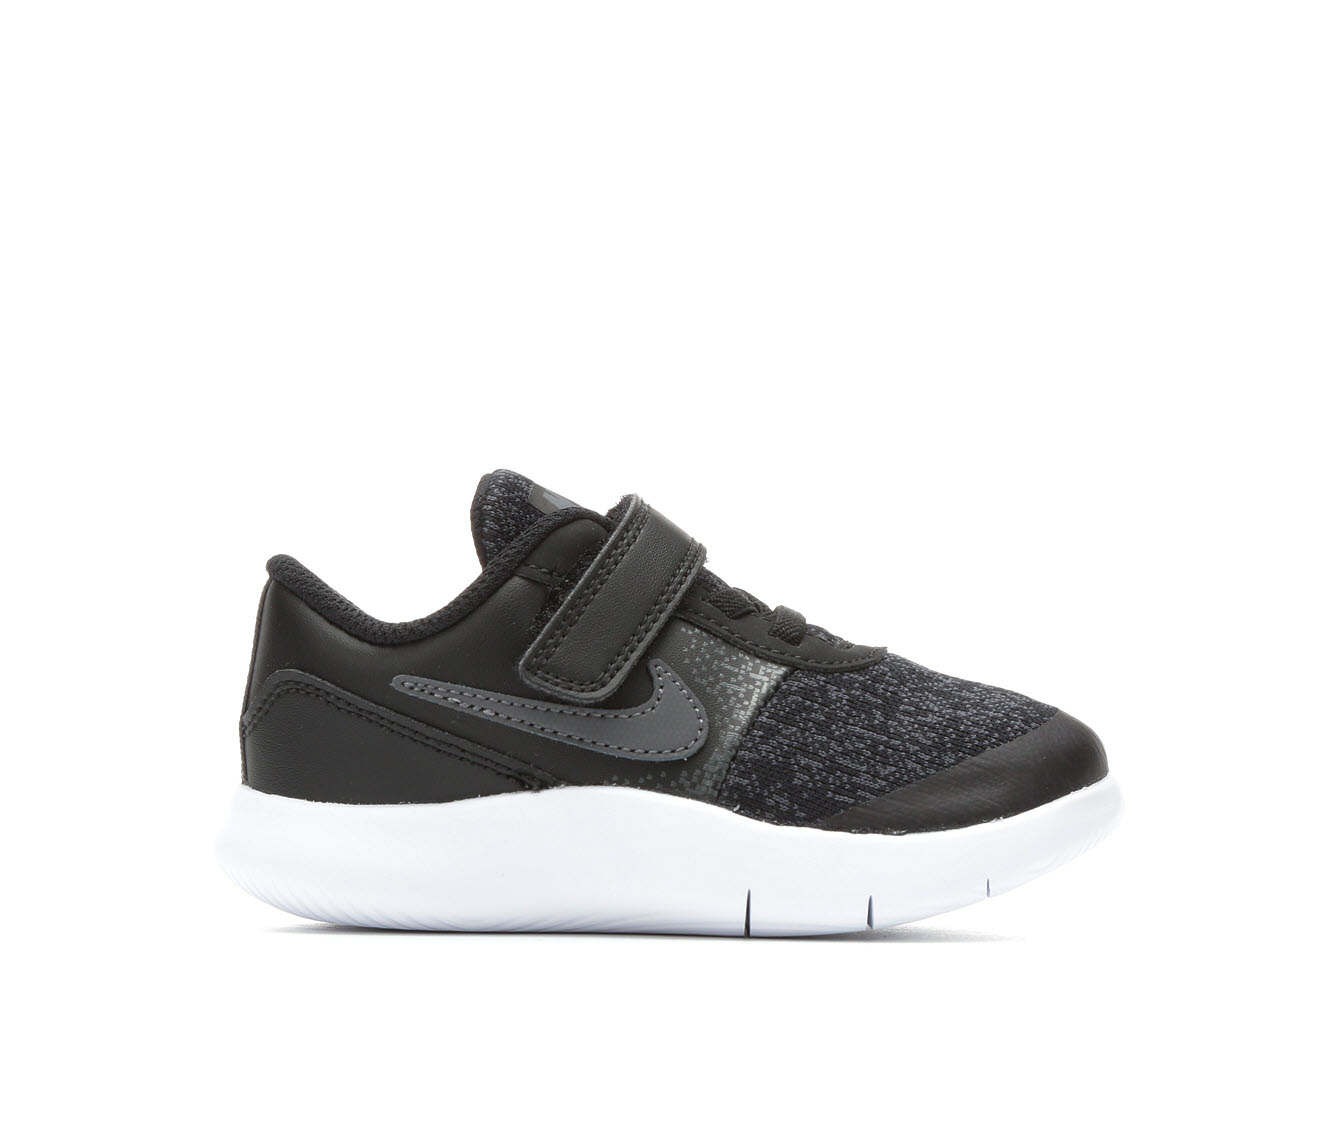 Boys' Nike Infant Flex Contact Velcro Running Shoes (Black)